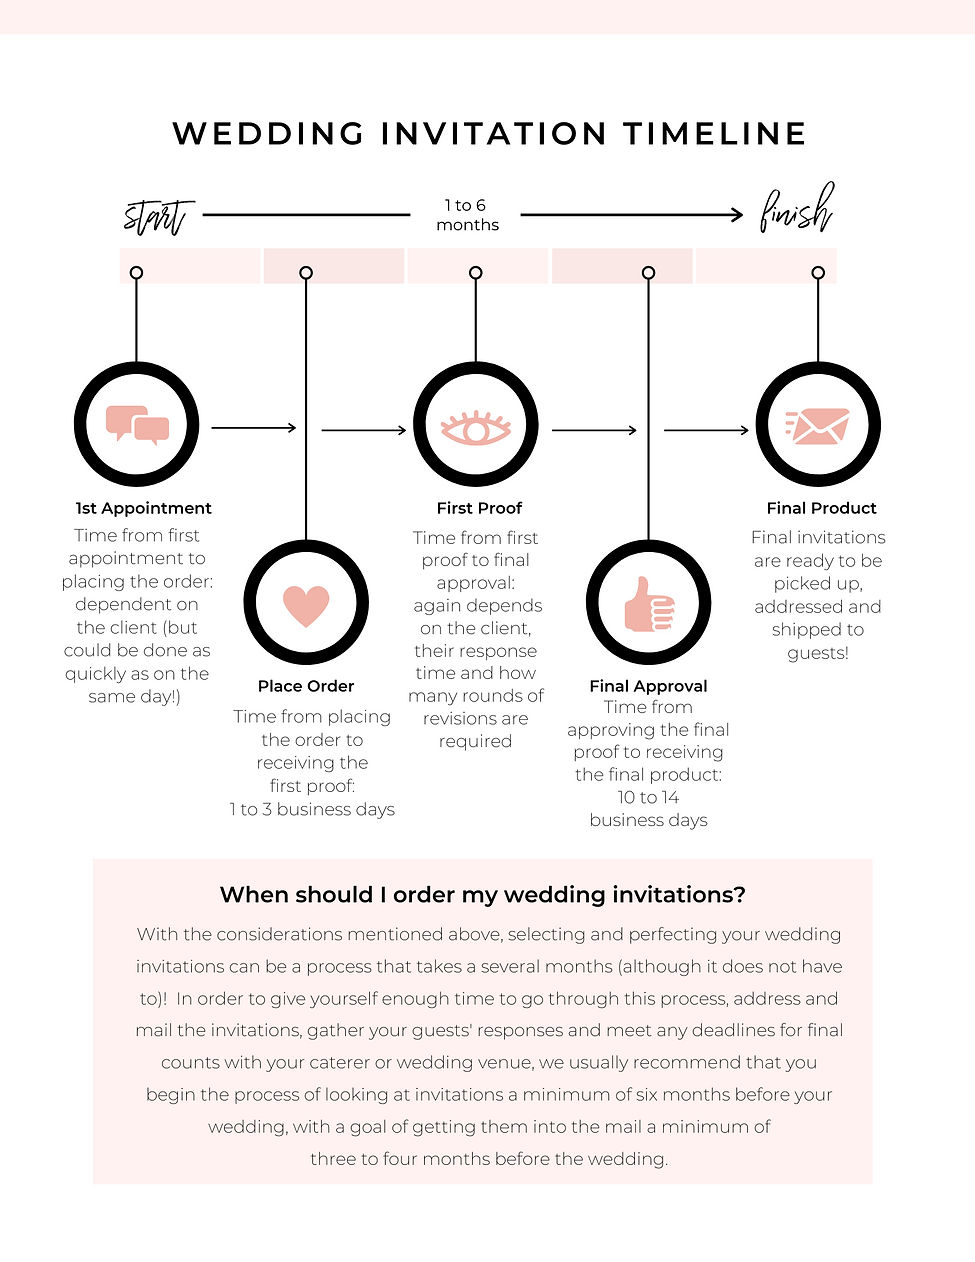 Wedding Invitation Timeline.png